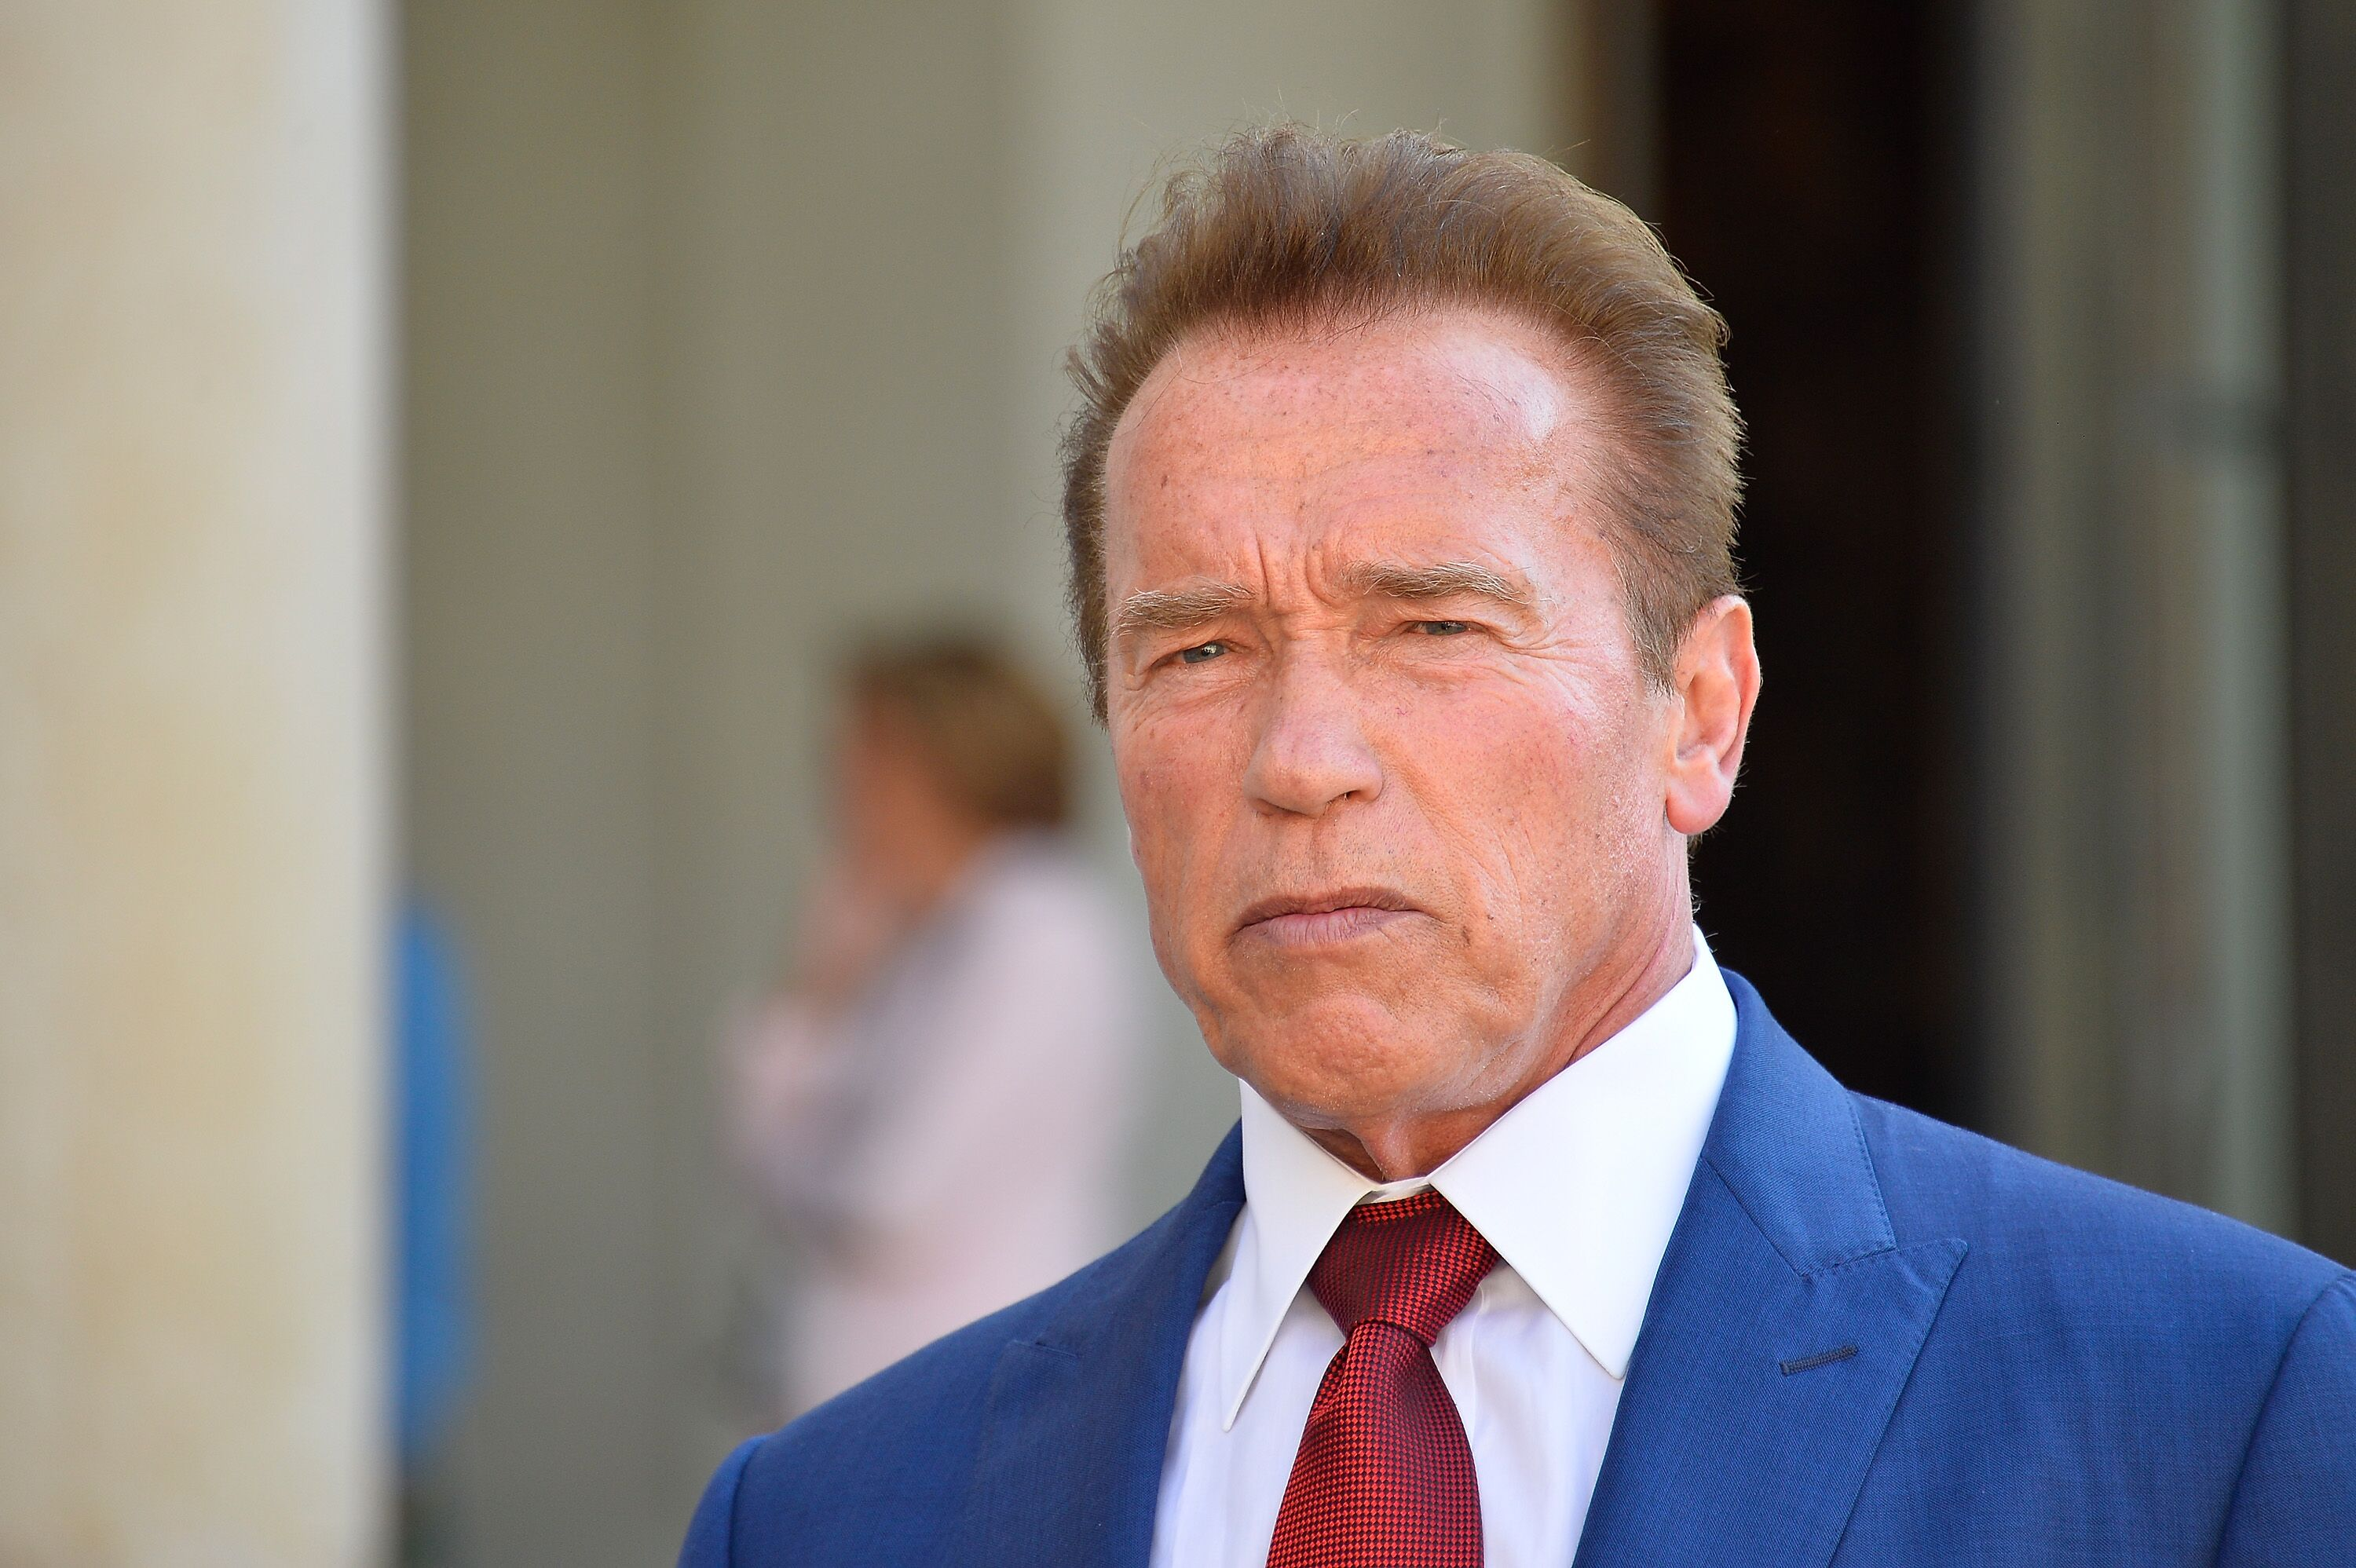 Arnold Schwarzenegger after meeting French President Emmanuel Macron at the Elysee Palace on June 23, 2017. | Photo: Getty Images